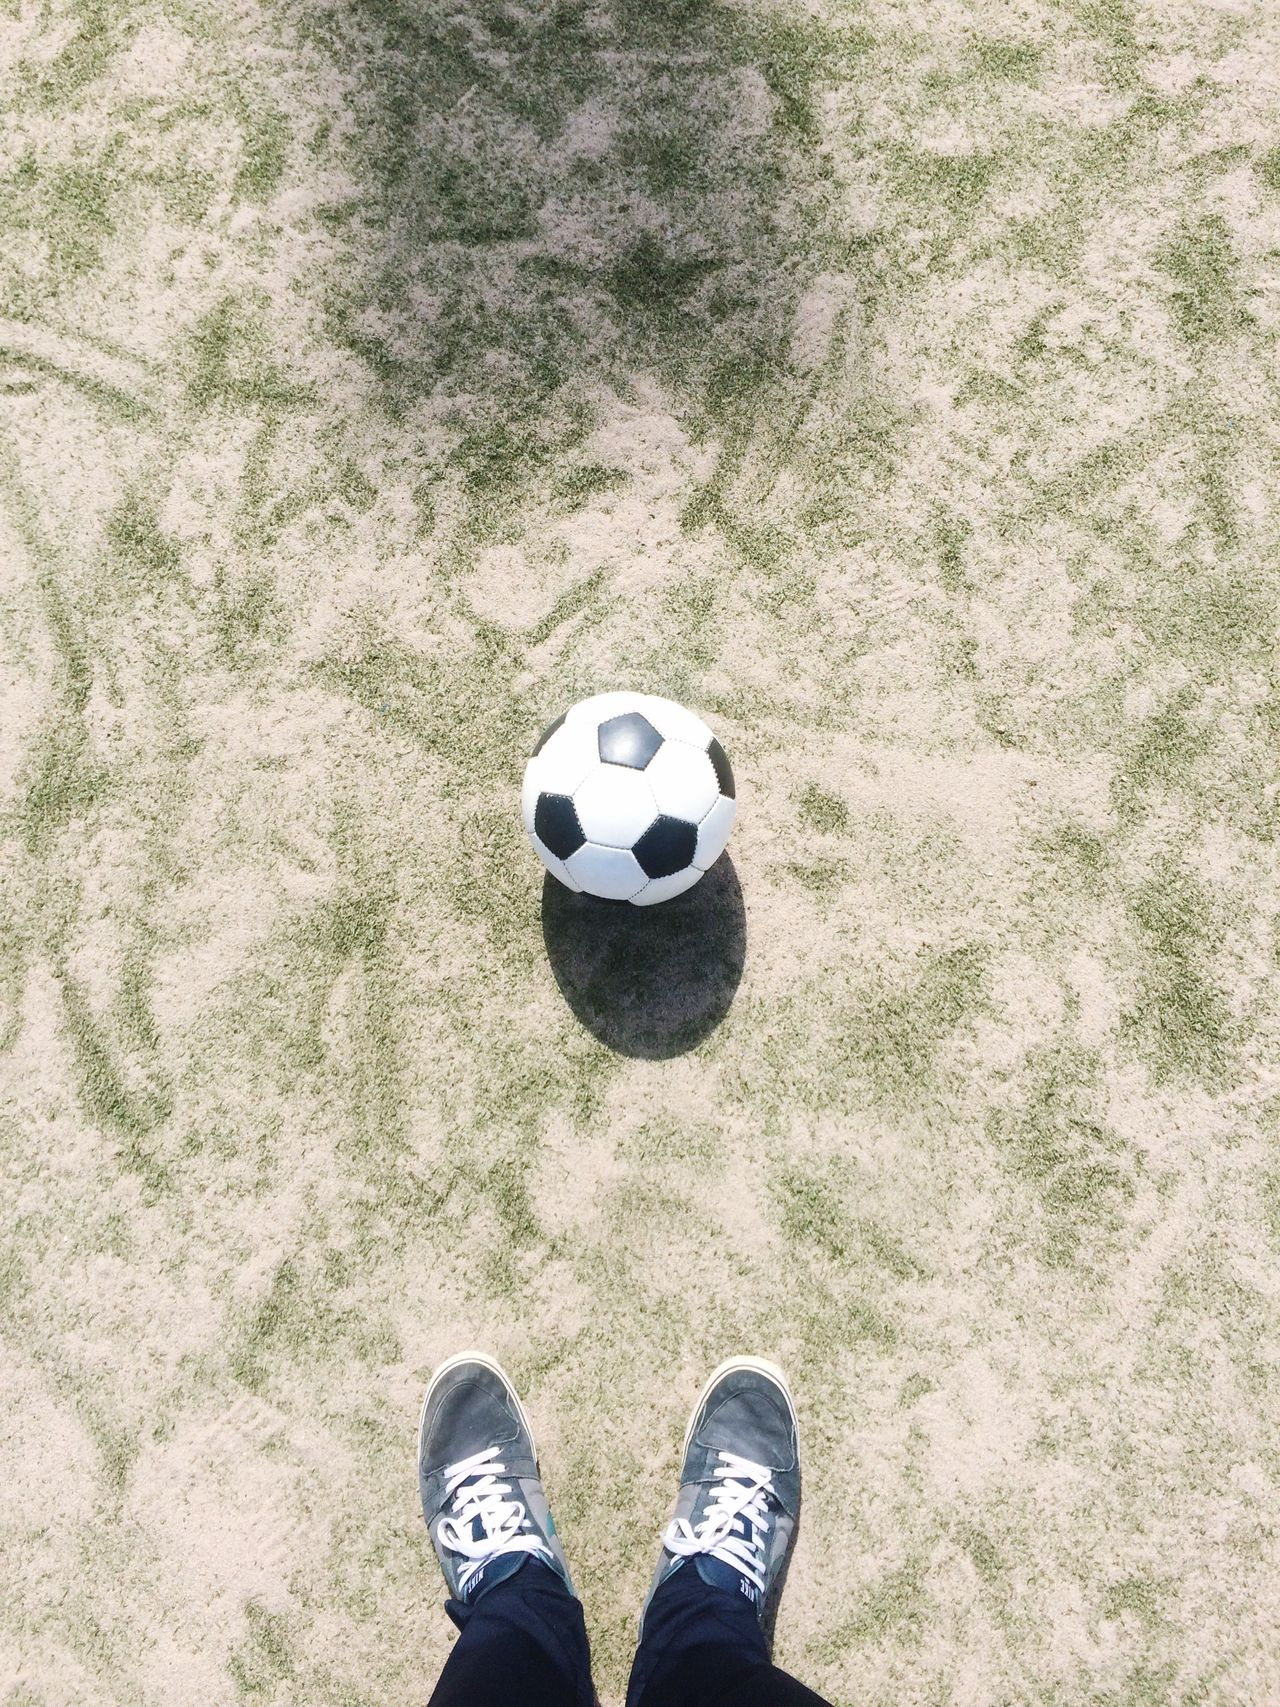 Beautiful stock photos of soccer balls, Canvas Shoe, Day, High Angle View, Human Body Part